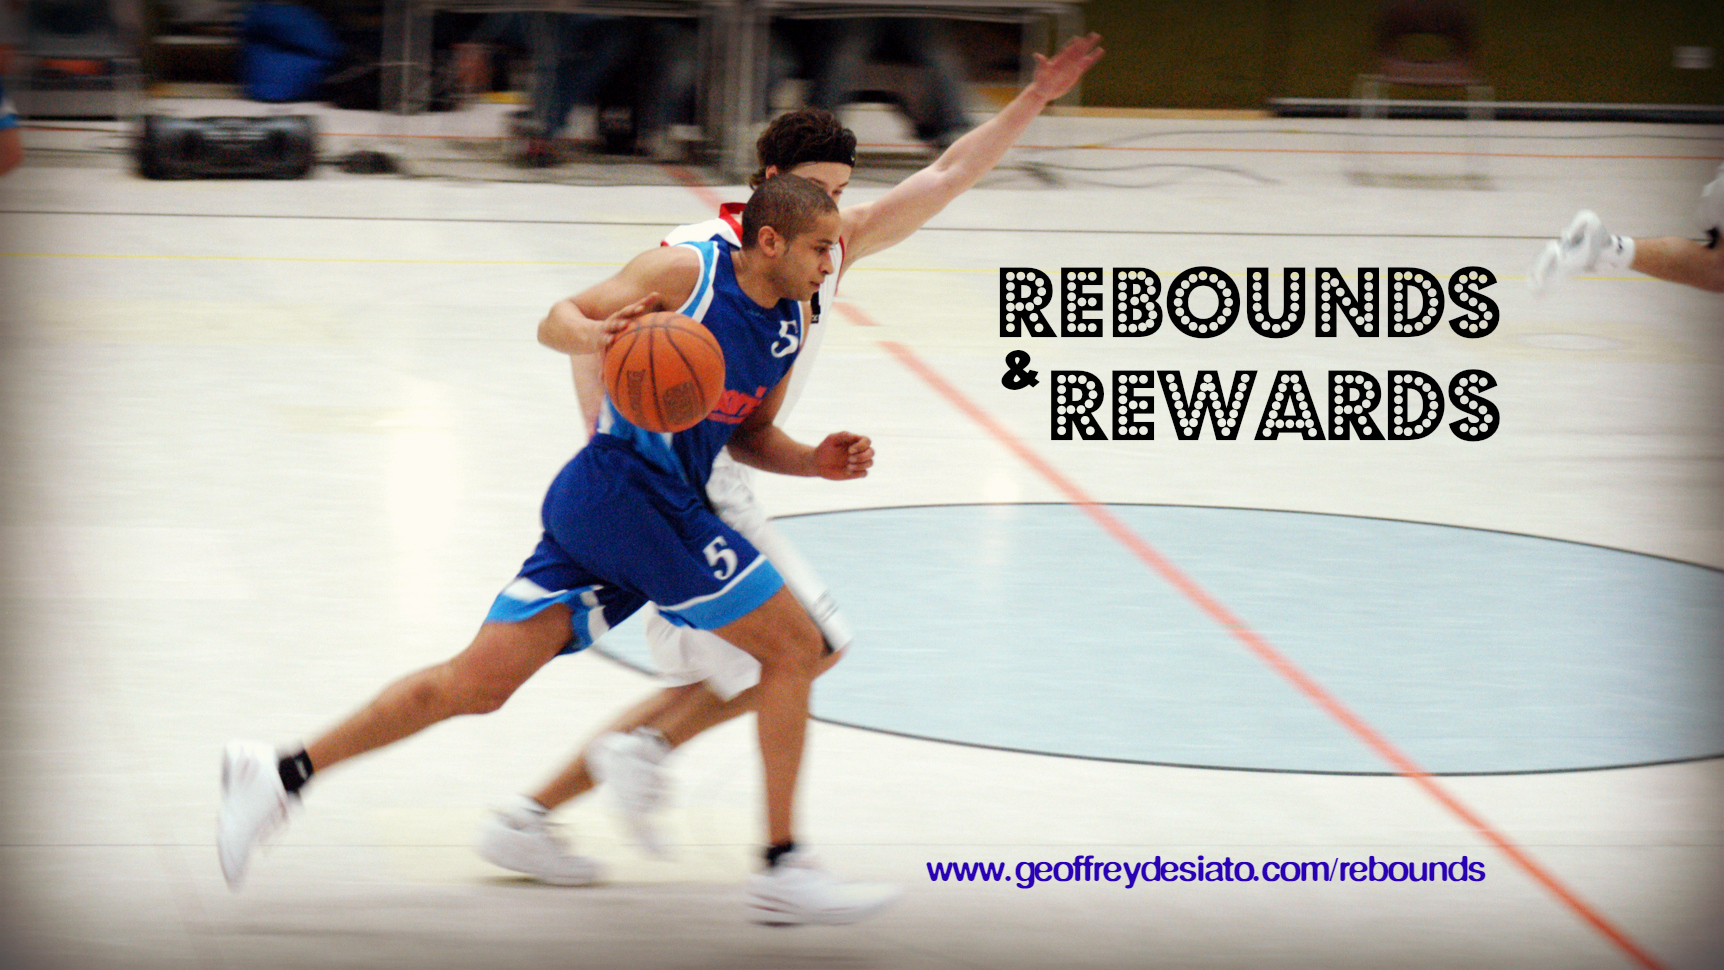 Rebounds & Rewards